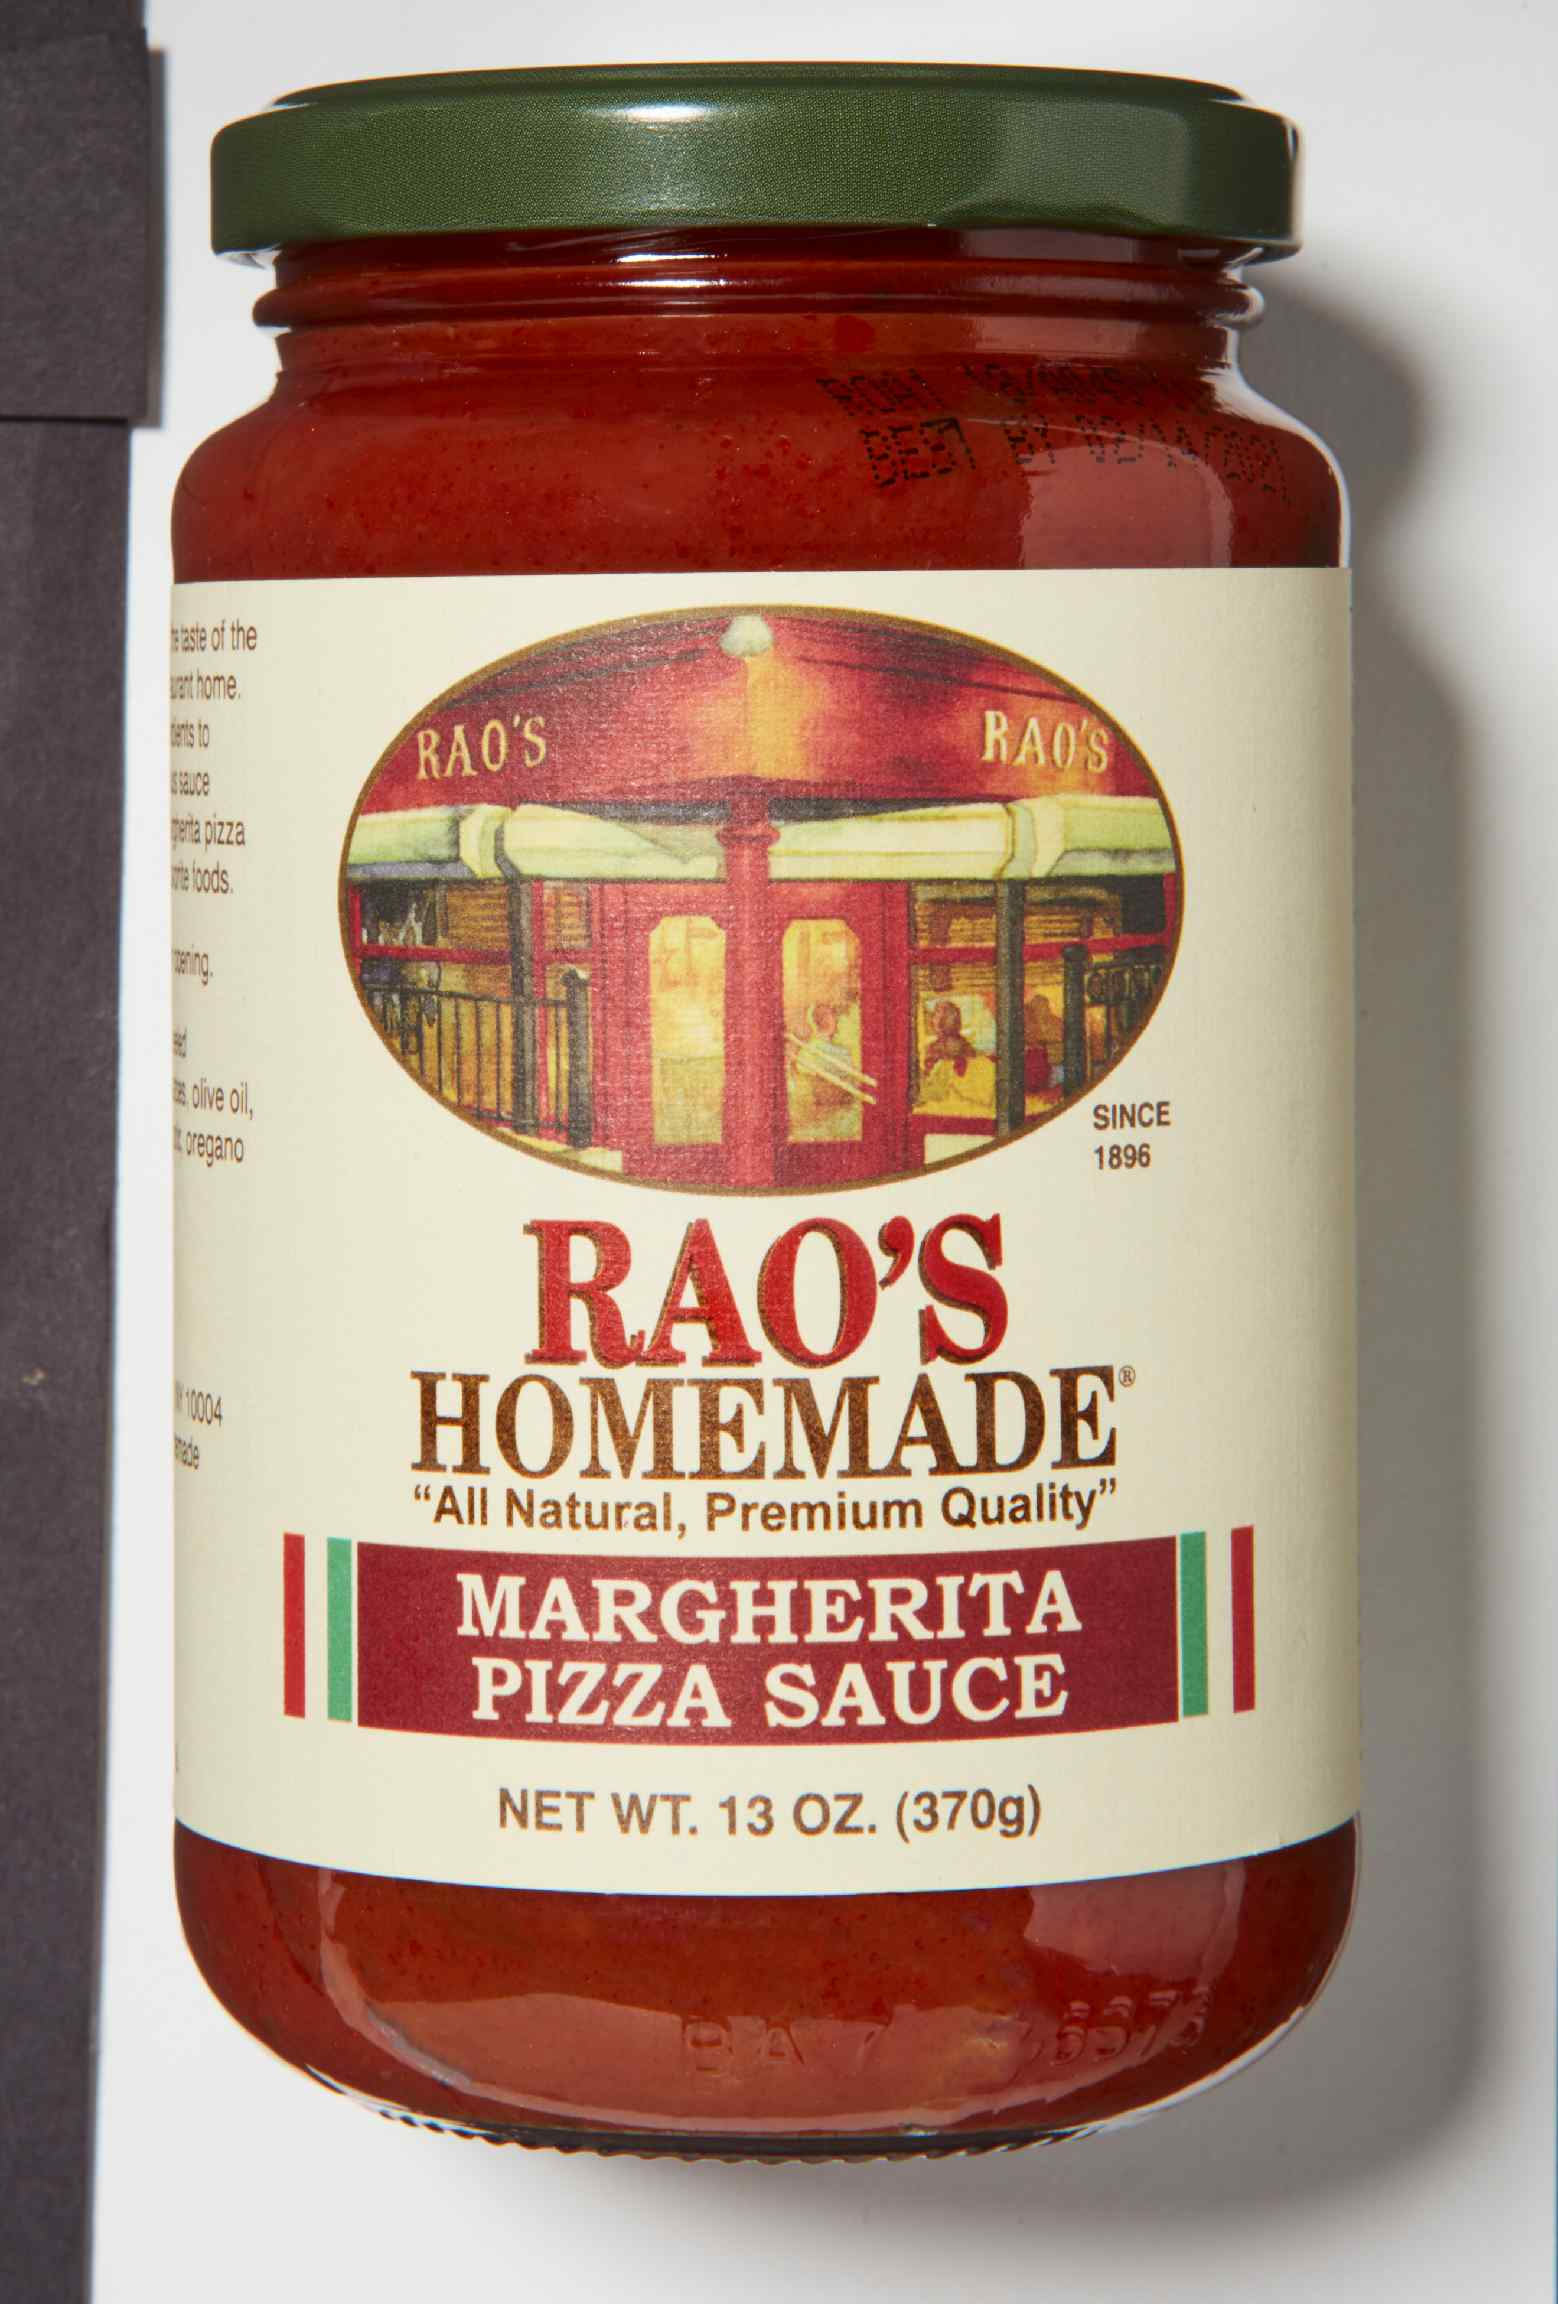 Rao's Homemade Margherita Pizza Sauce